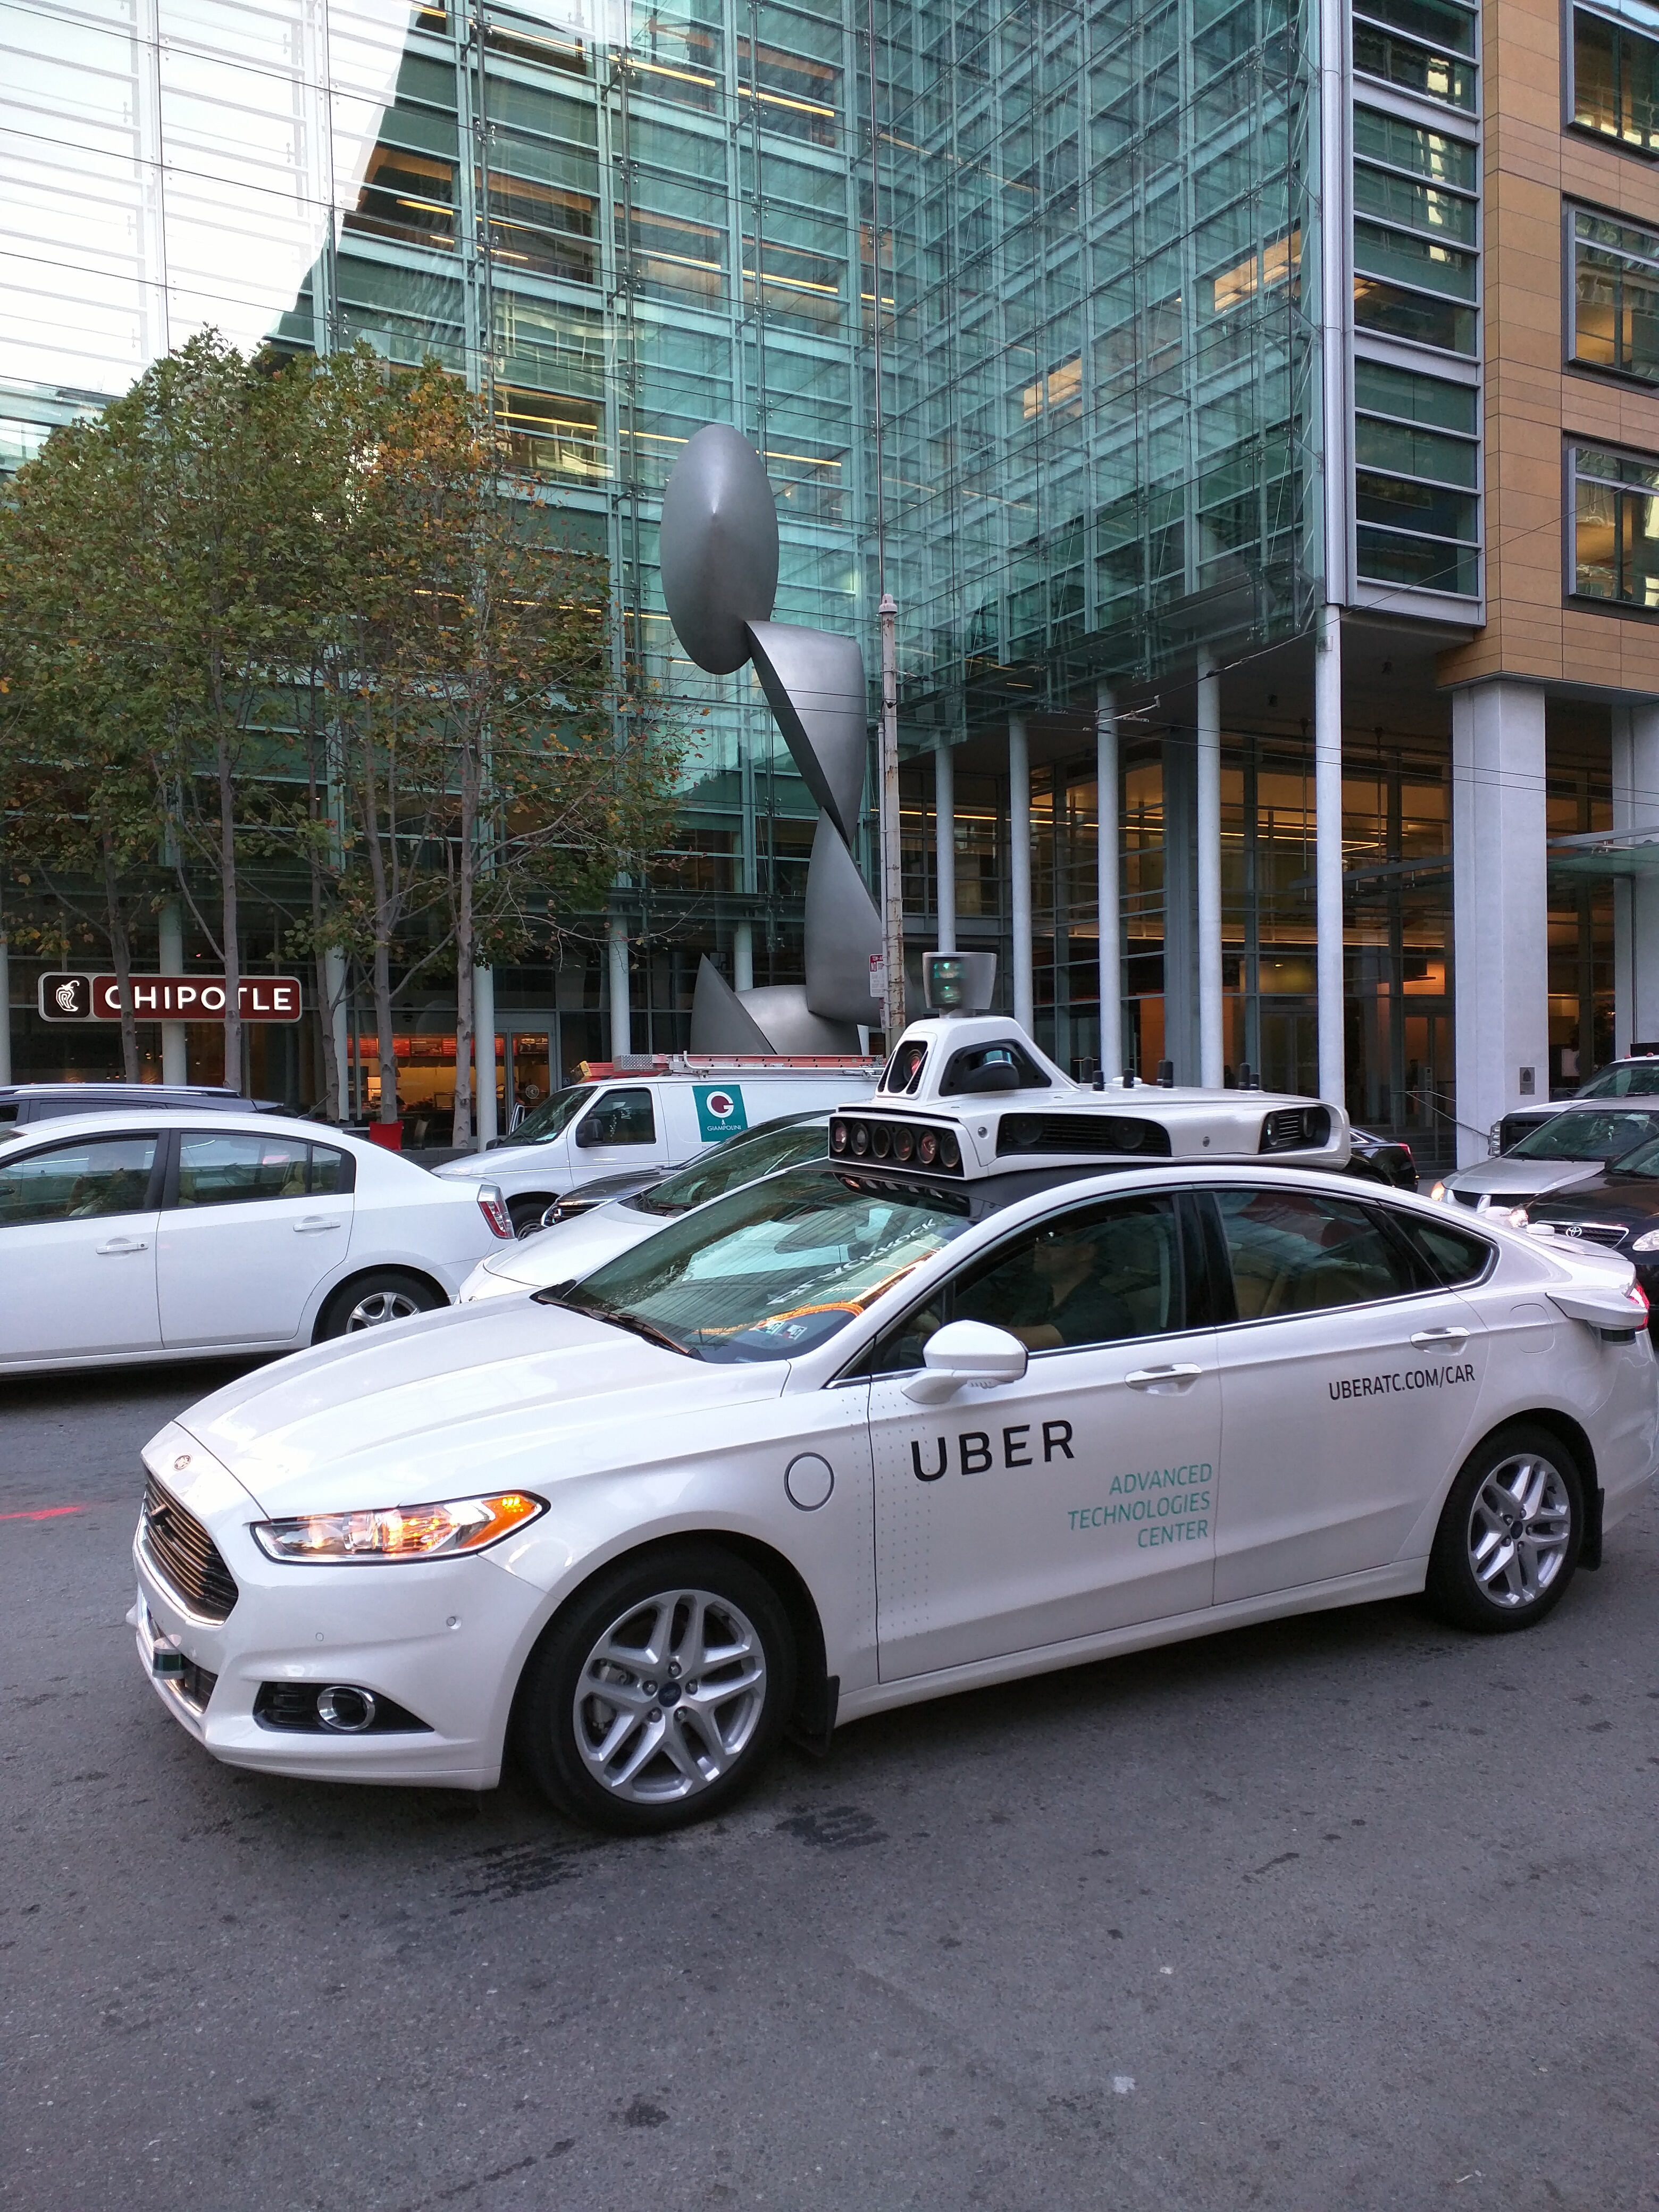 Uber's self-driving car test driving in downtown San Francisco